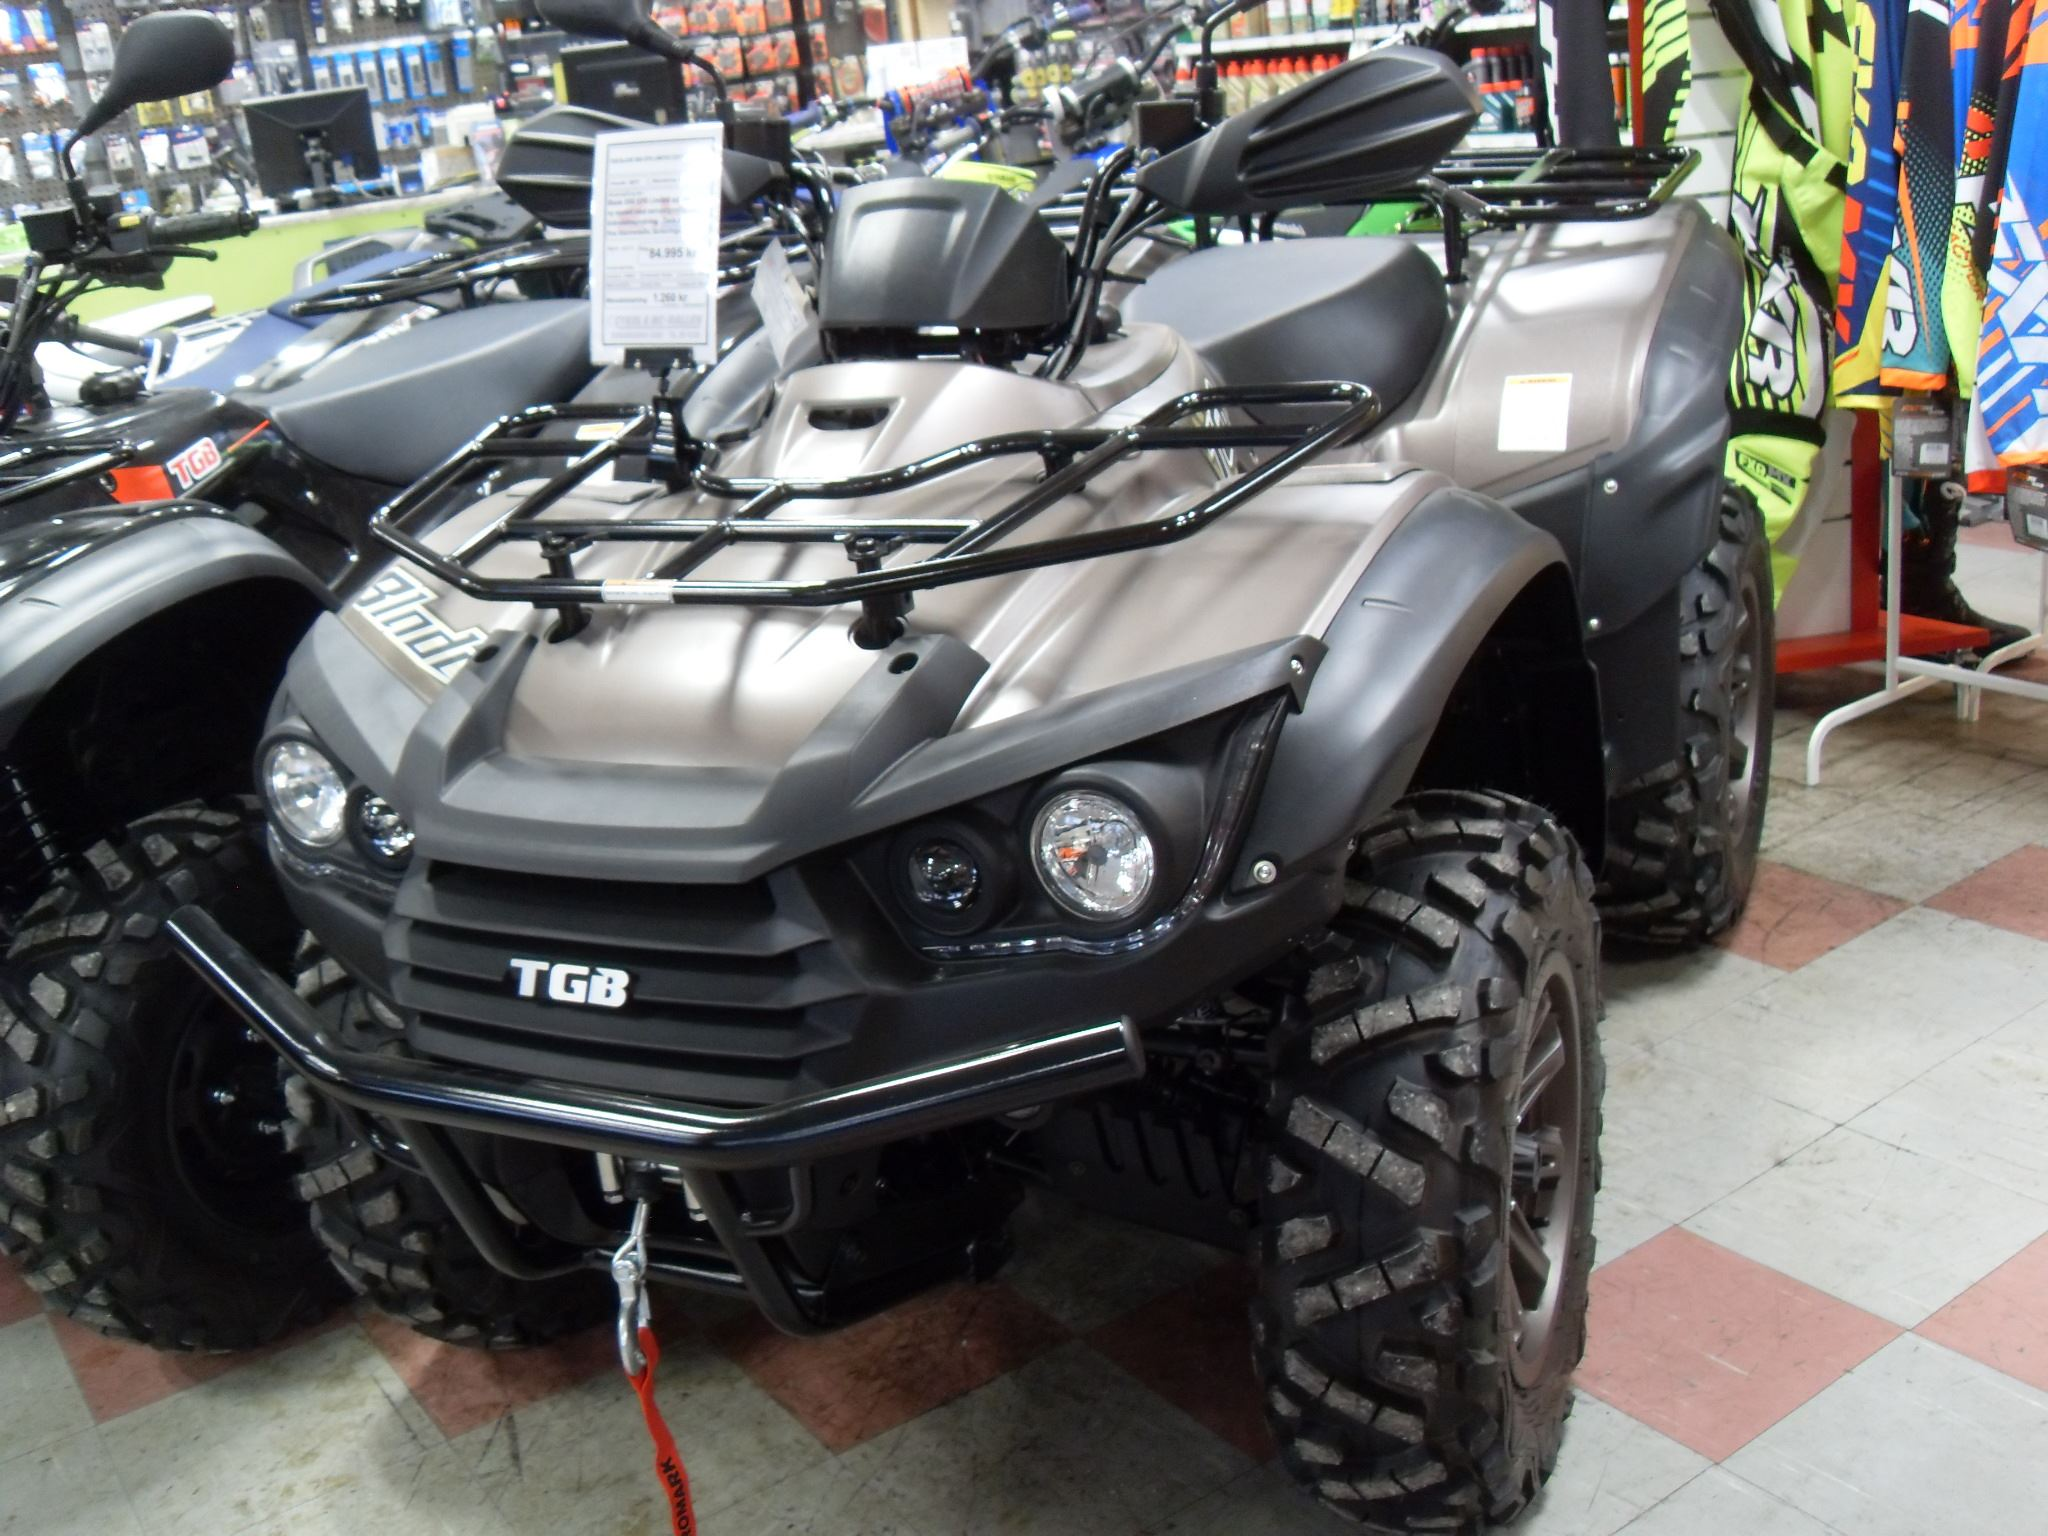 Klass D - TGB 600 (4-wheeler, allowed to drive with car driving license)